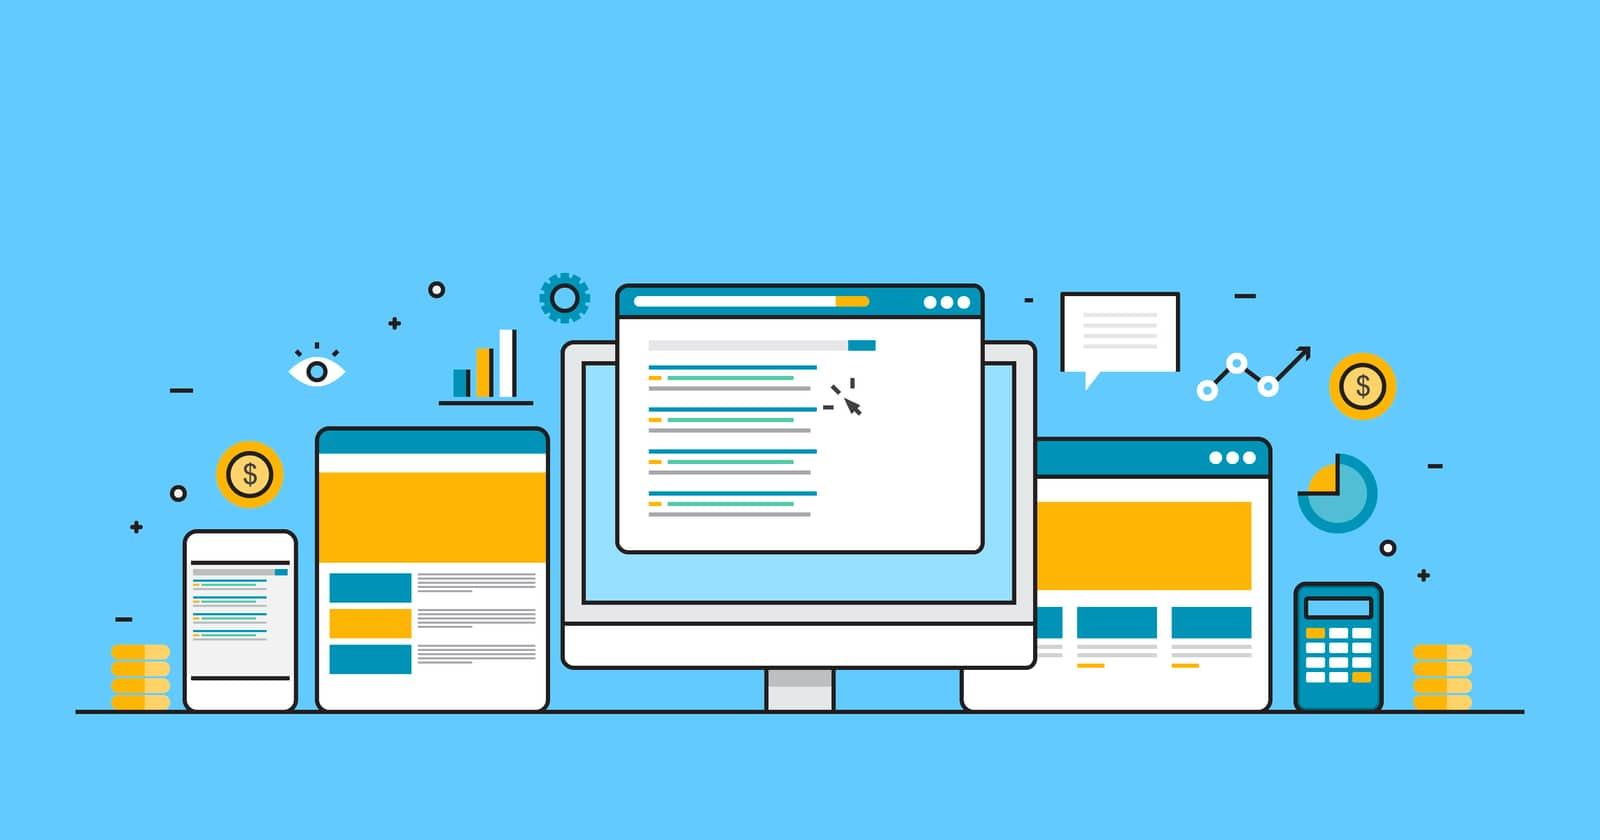 10 Paid Search & PPC Planning Best Practices via @sejournal, @LisaRocksSEM